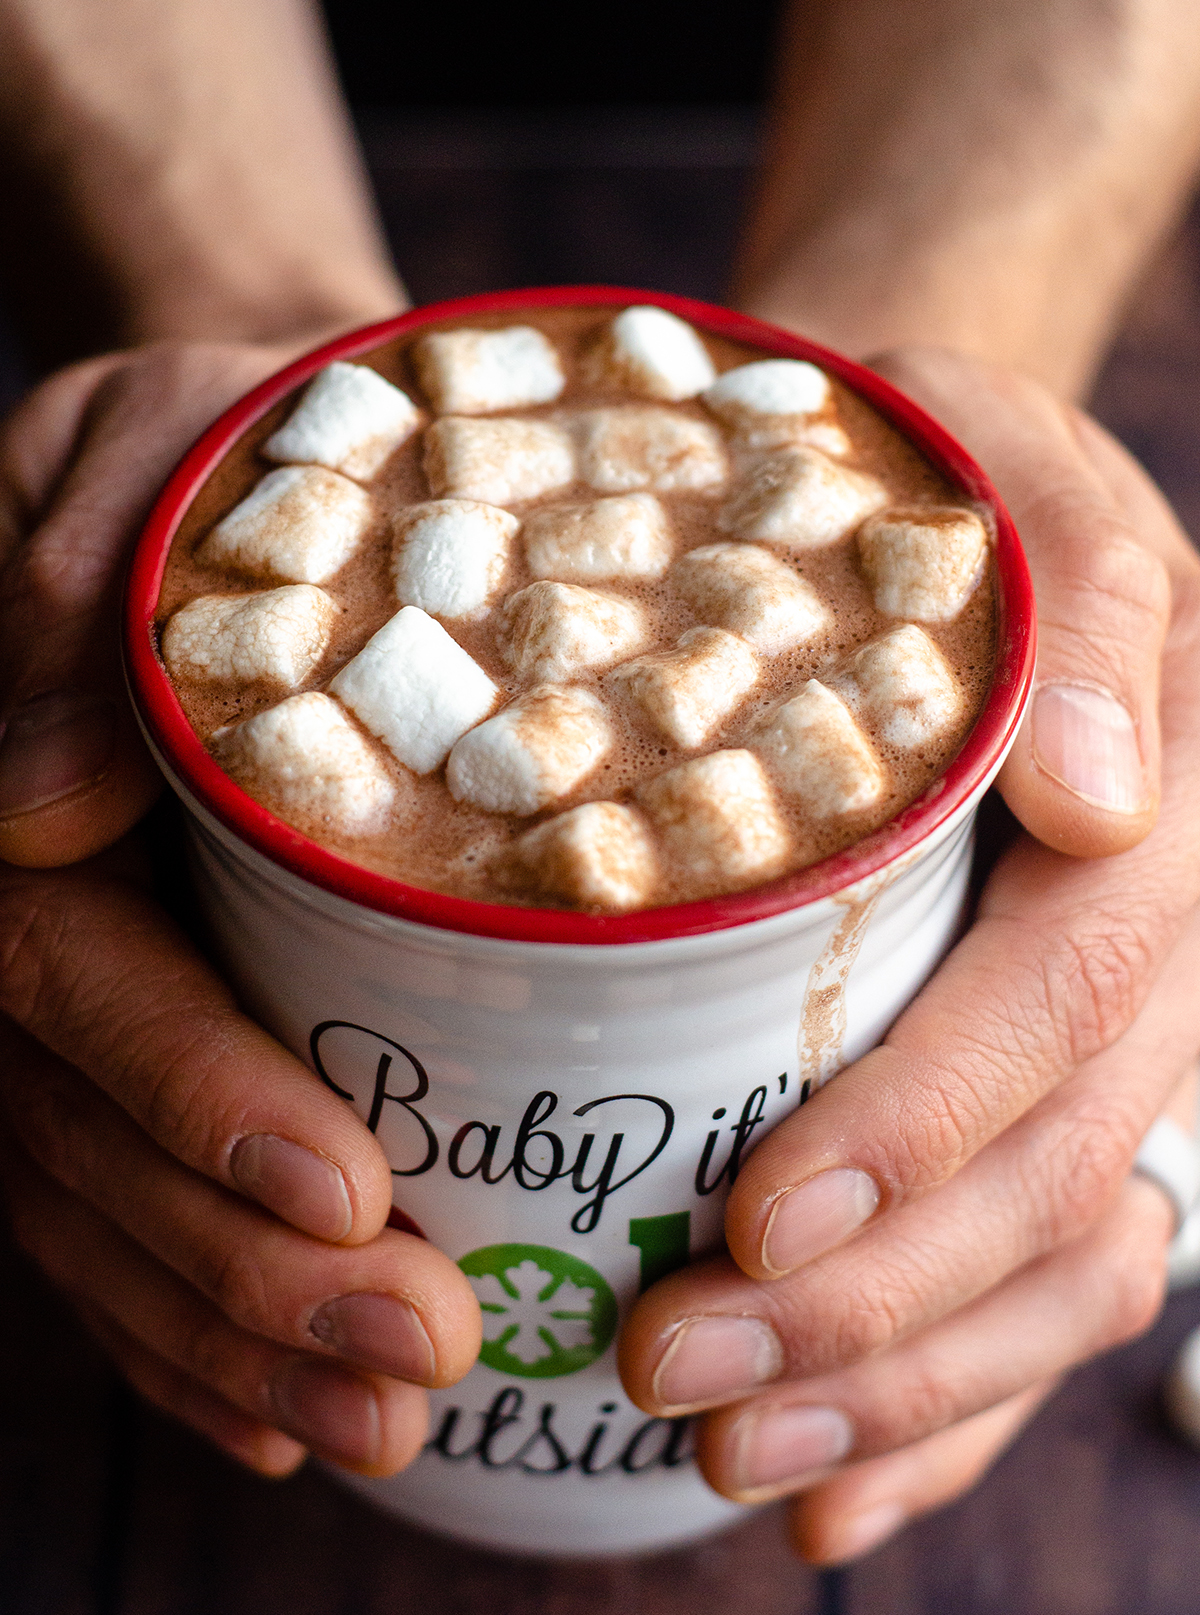 Ditch the store-bought and make your own hot cocoa mix to keep in your pantry. It's also perfect for gifting as a homemade holiday gift.